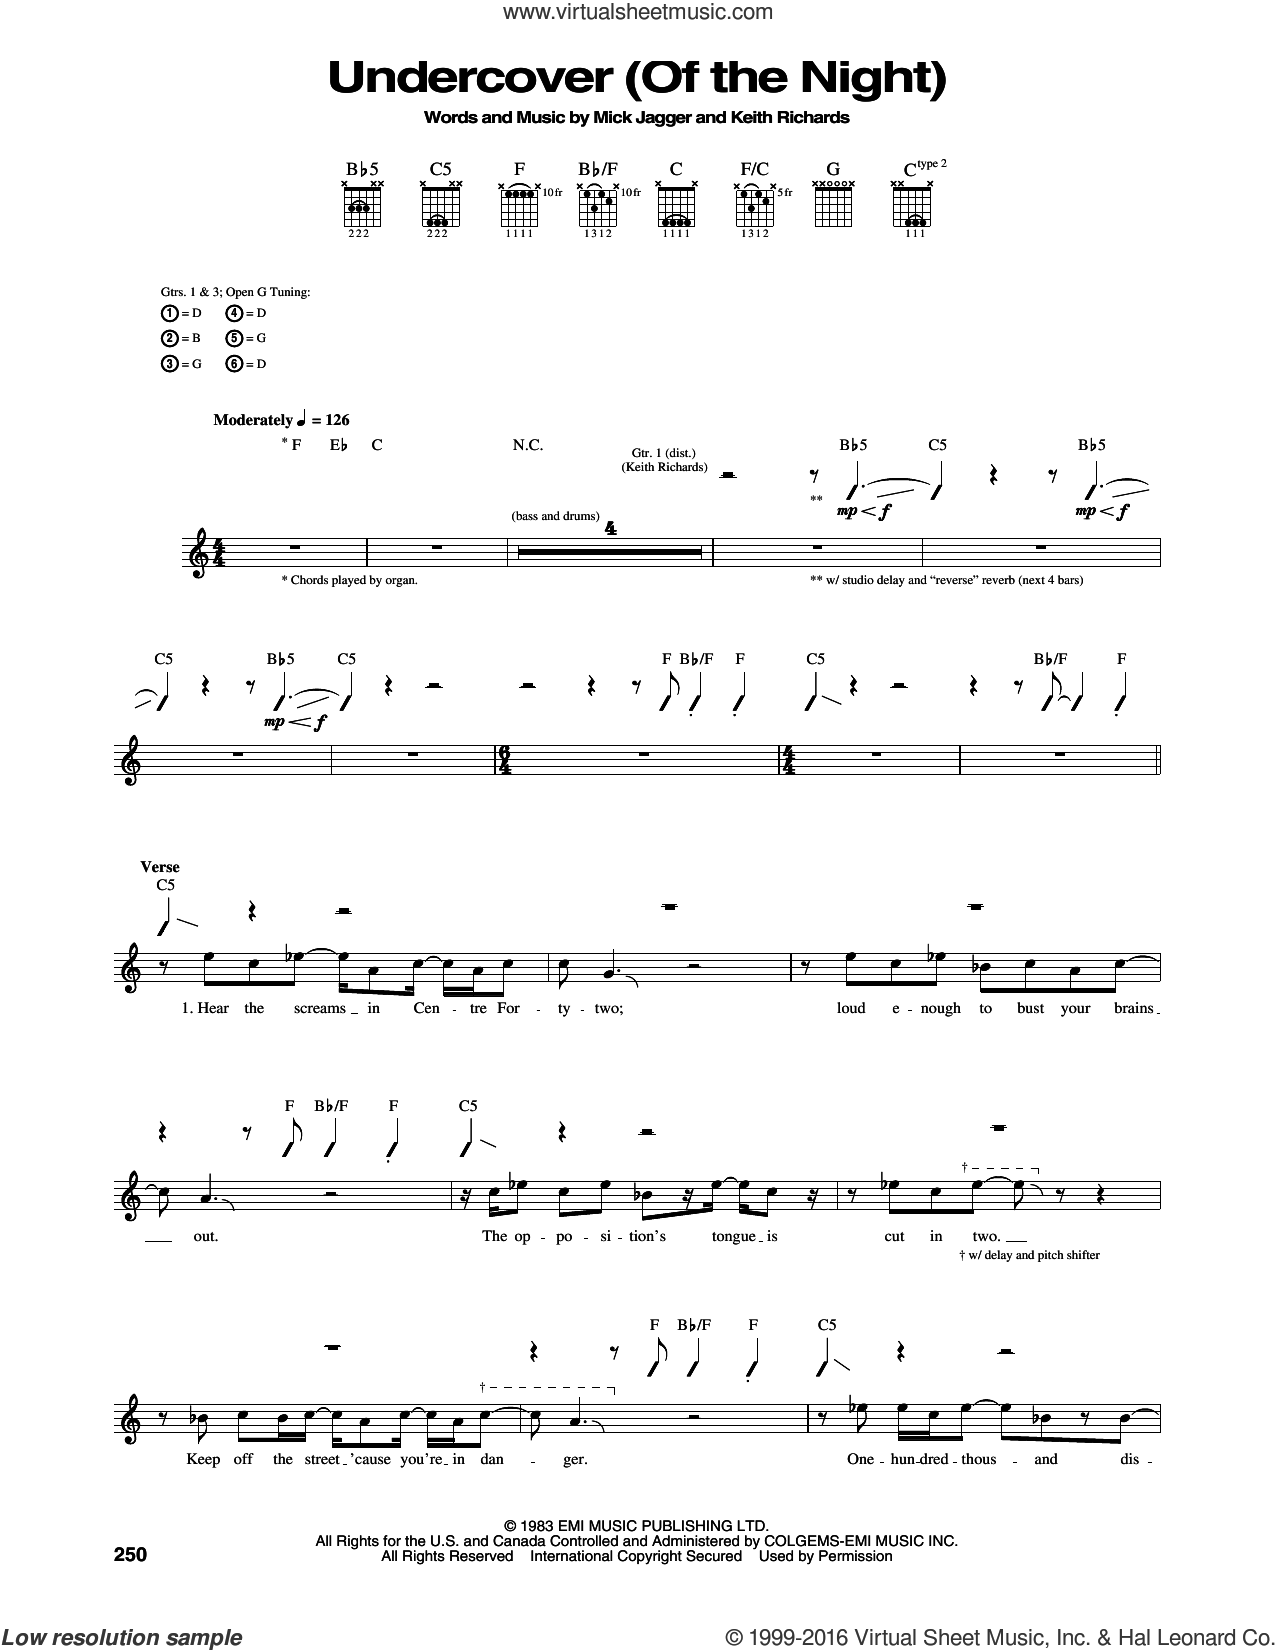 Undercover (Of The Night) sheet music for guitar (tablature) by The Rolling Stones, Keith Richards and Mick Jagger, intermediate skill level